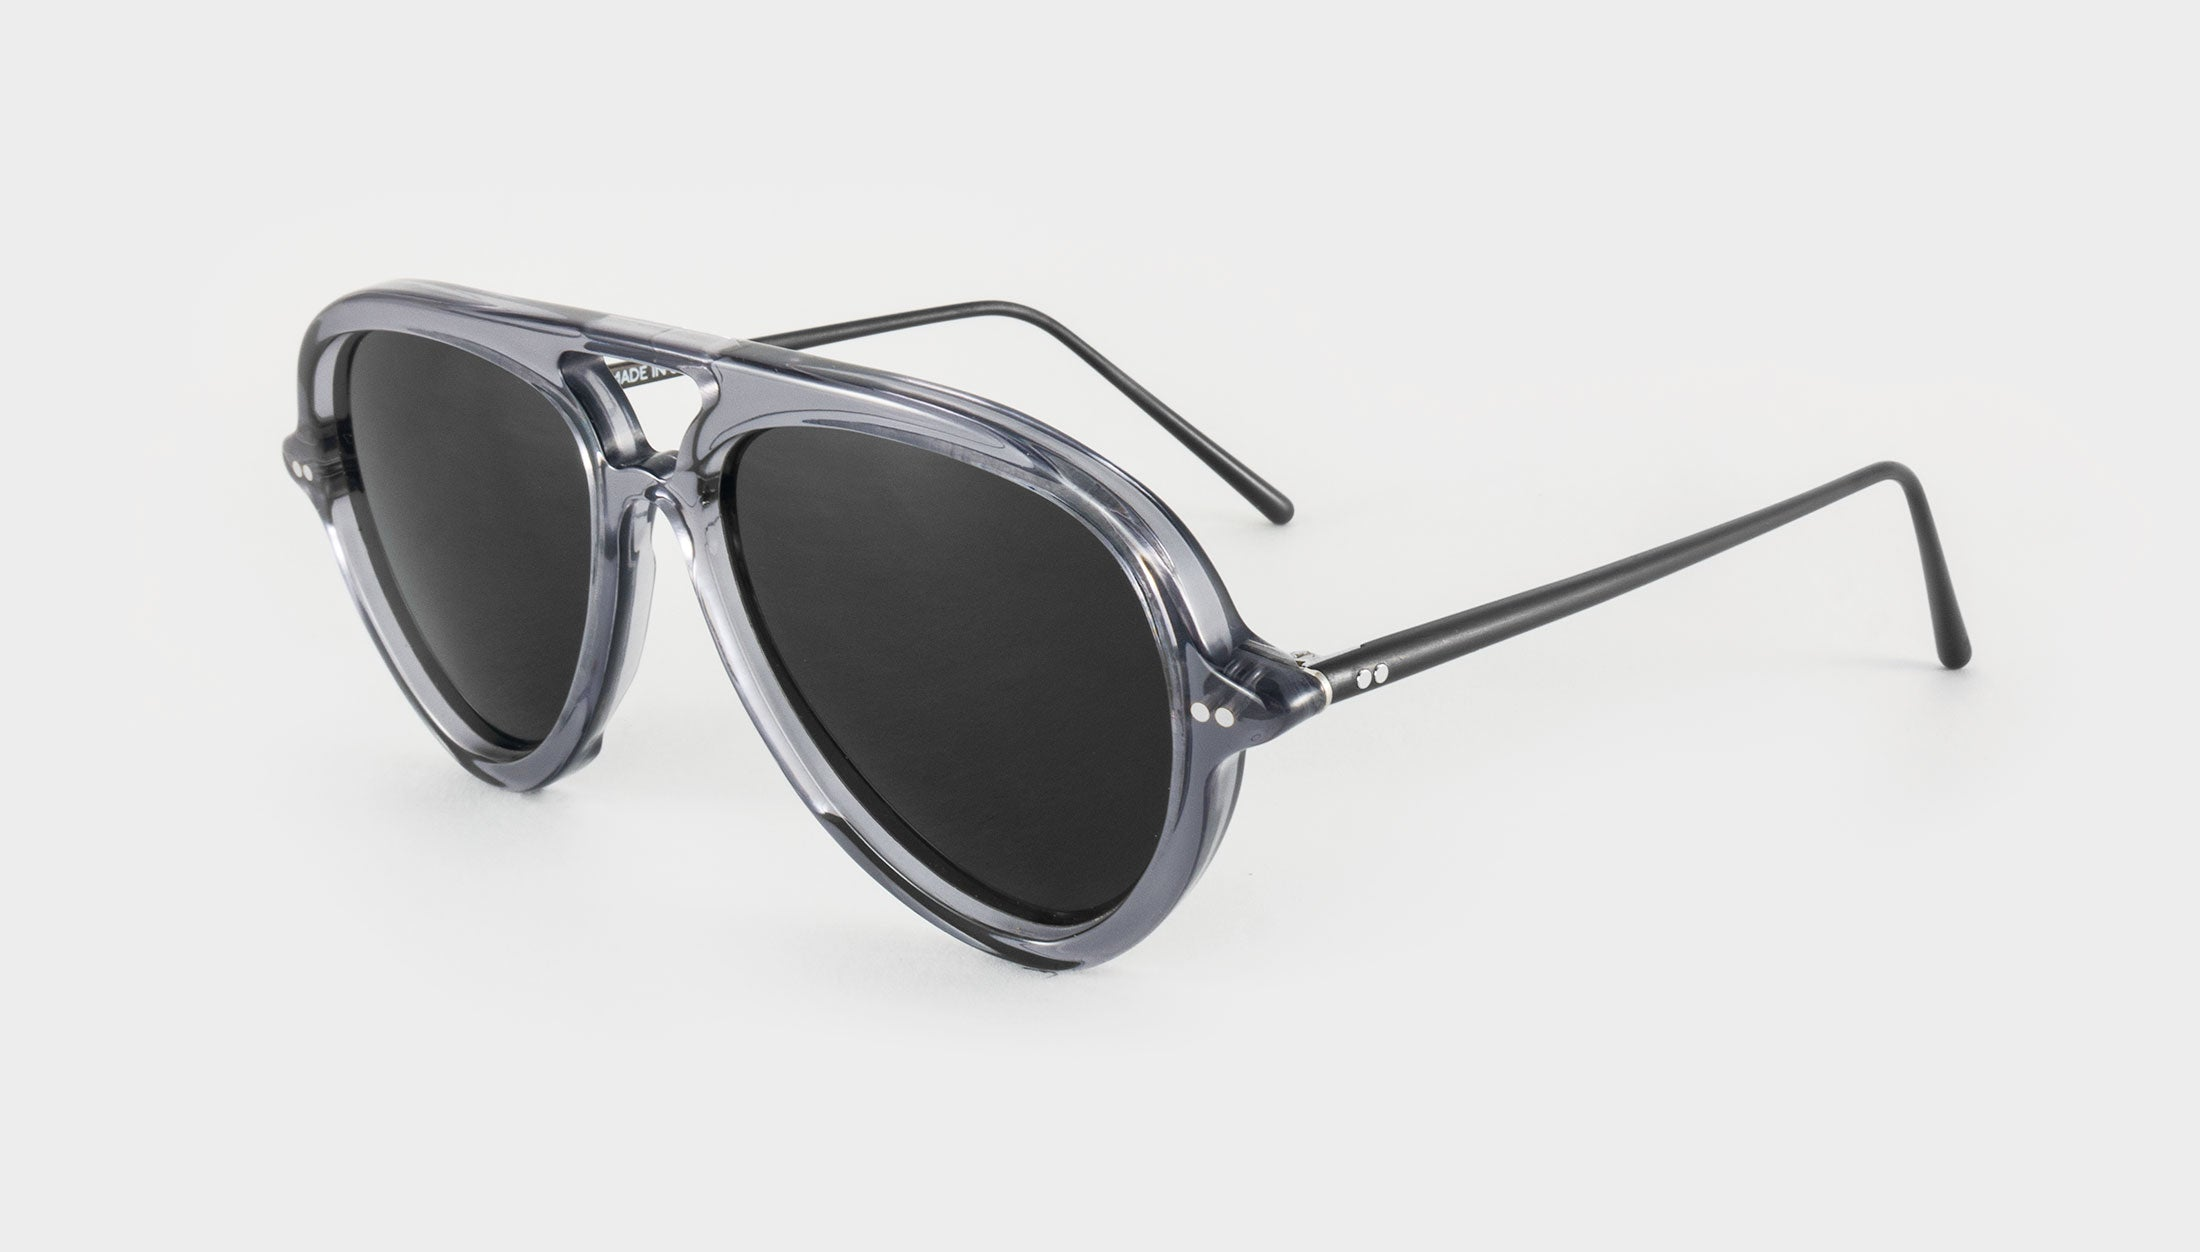 Polarised grey aviator sunglasses for women side-view